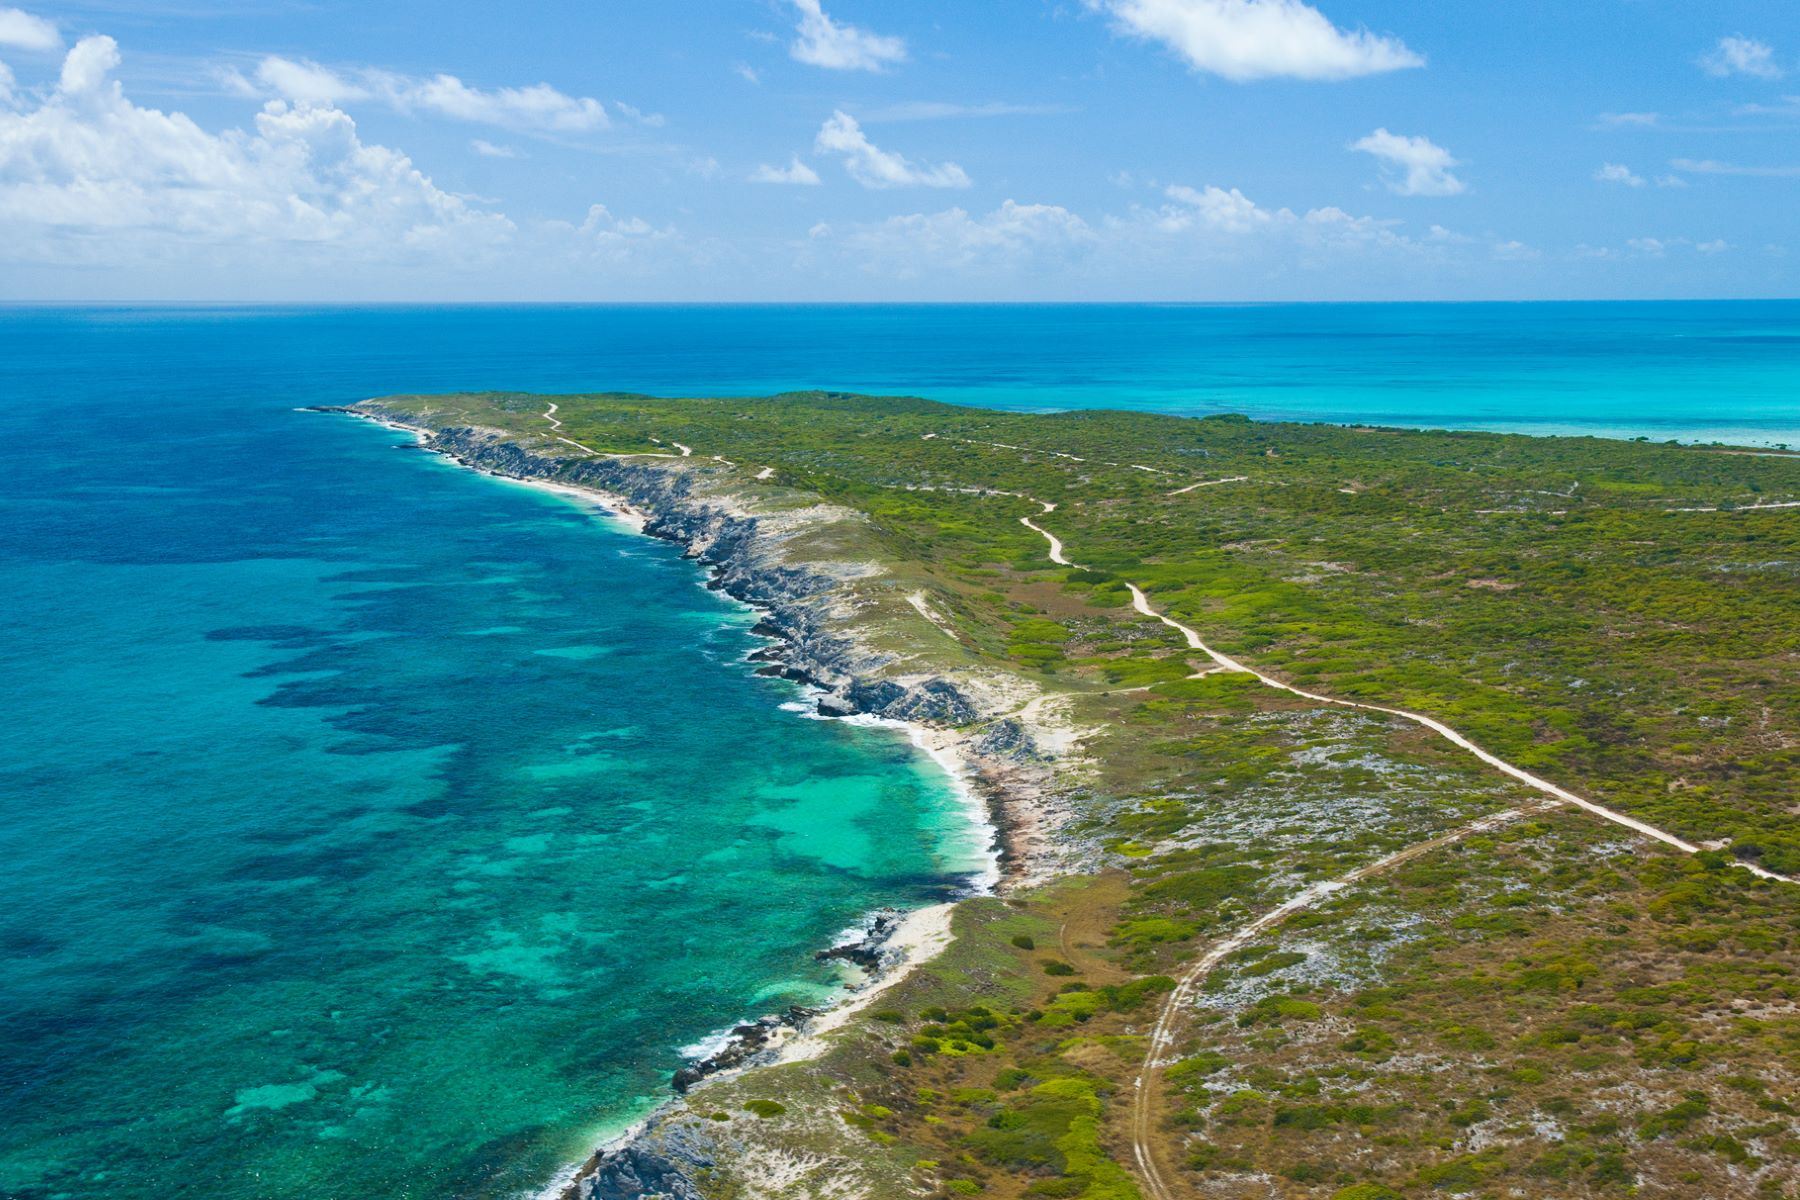 Land for Sale at Hawkins Ridge Lot 281 Ambergris Cay, Ambergris Cay Turks And Caicos Islands